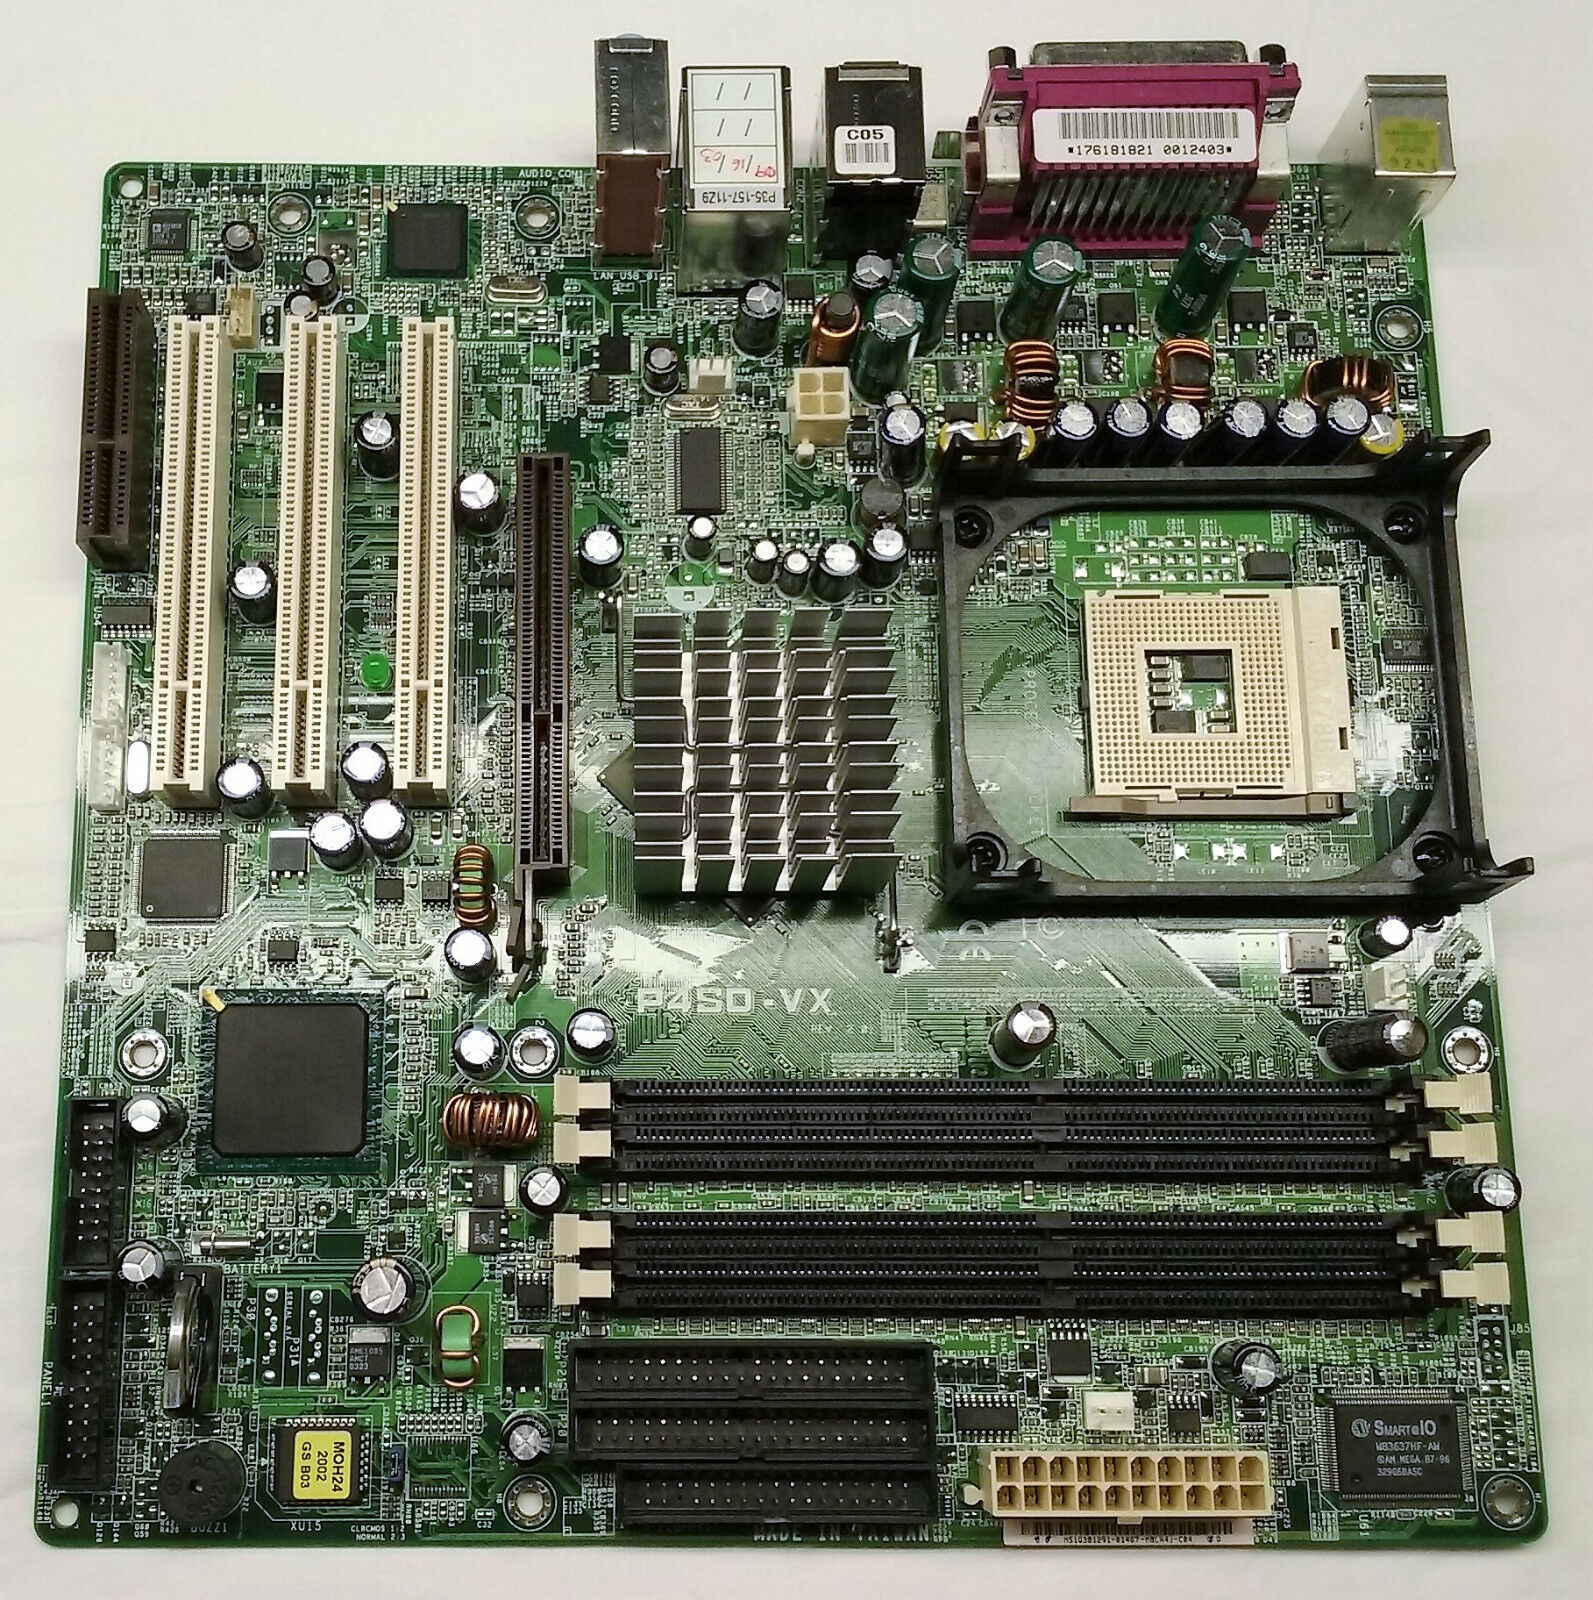 P4SD-VX MOTHERBOARD WINDOWS 7 X64 DRIVER DOWNLOAD